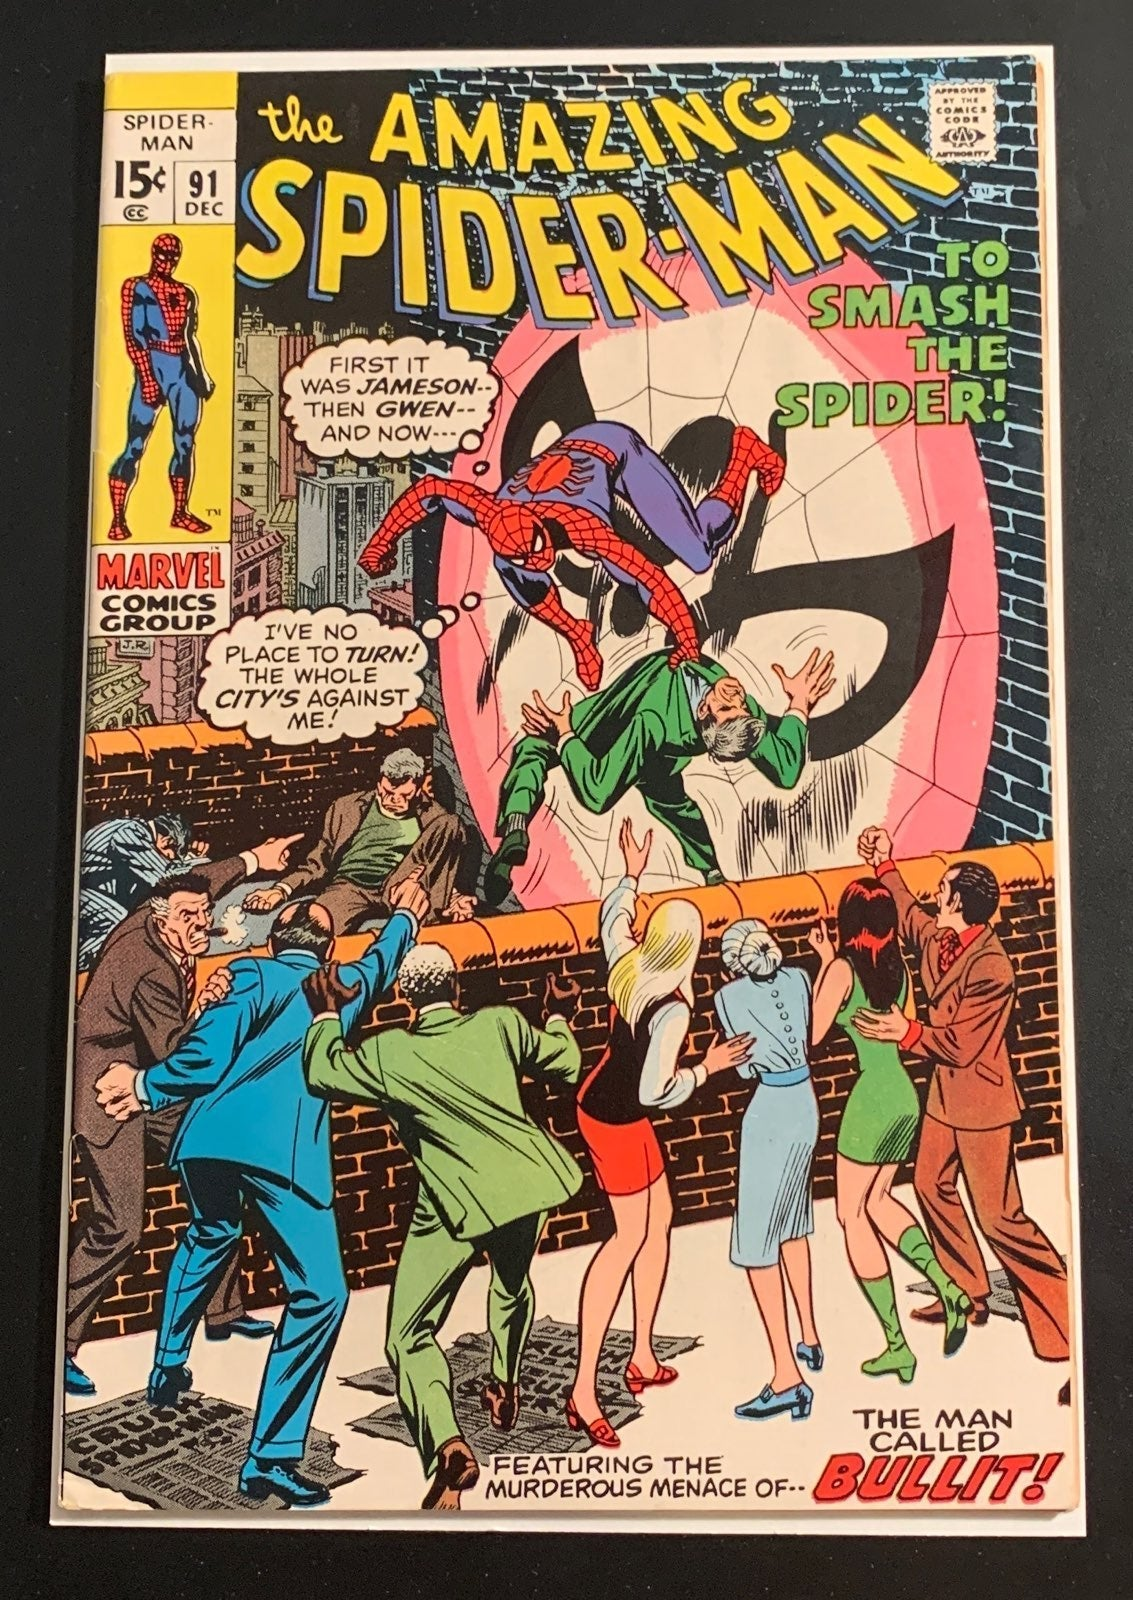 The Amazing Spider-Man Issue 91